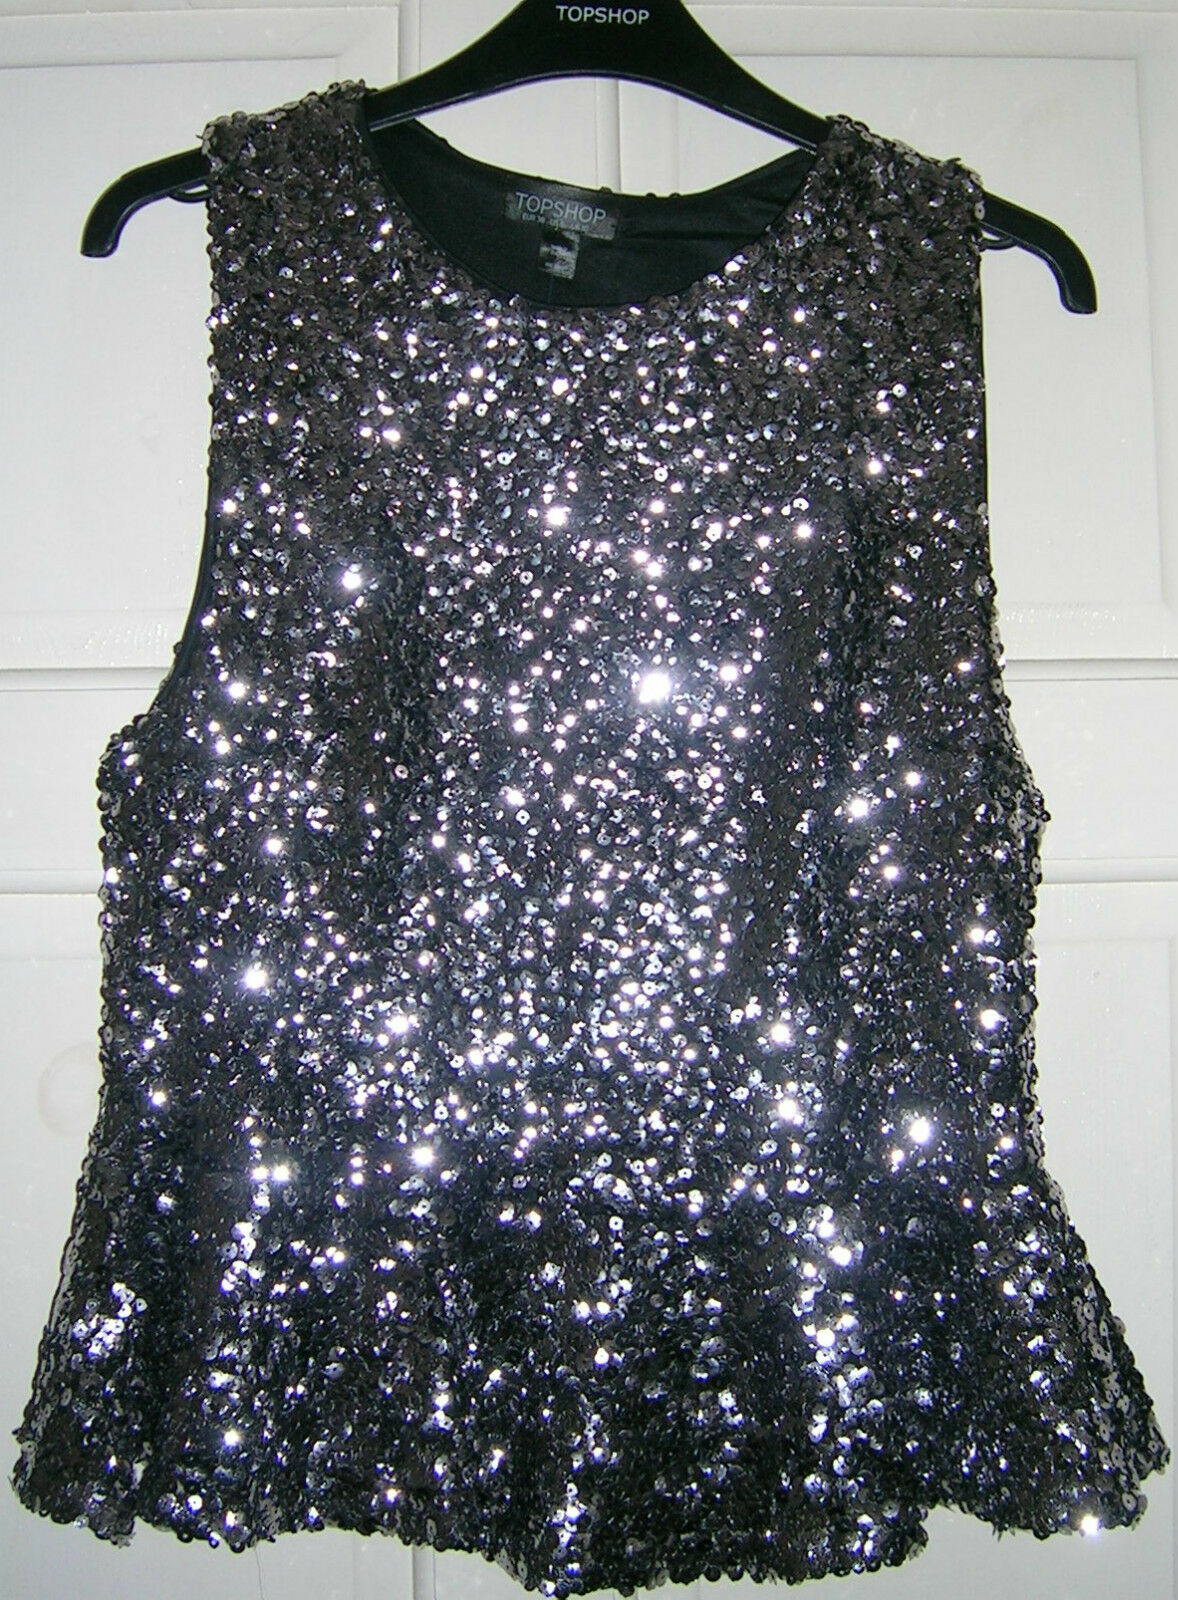 d1fbd84969 TOPSHOP SEQUINNED TOP UK SIZE 10 US 6 PEWTER PEPLUM nvximy7122-Tops ...